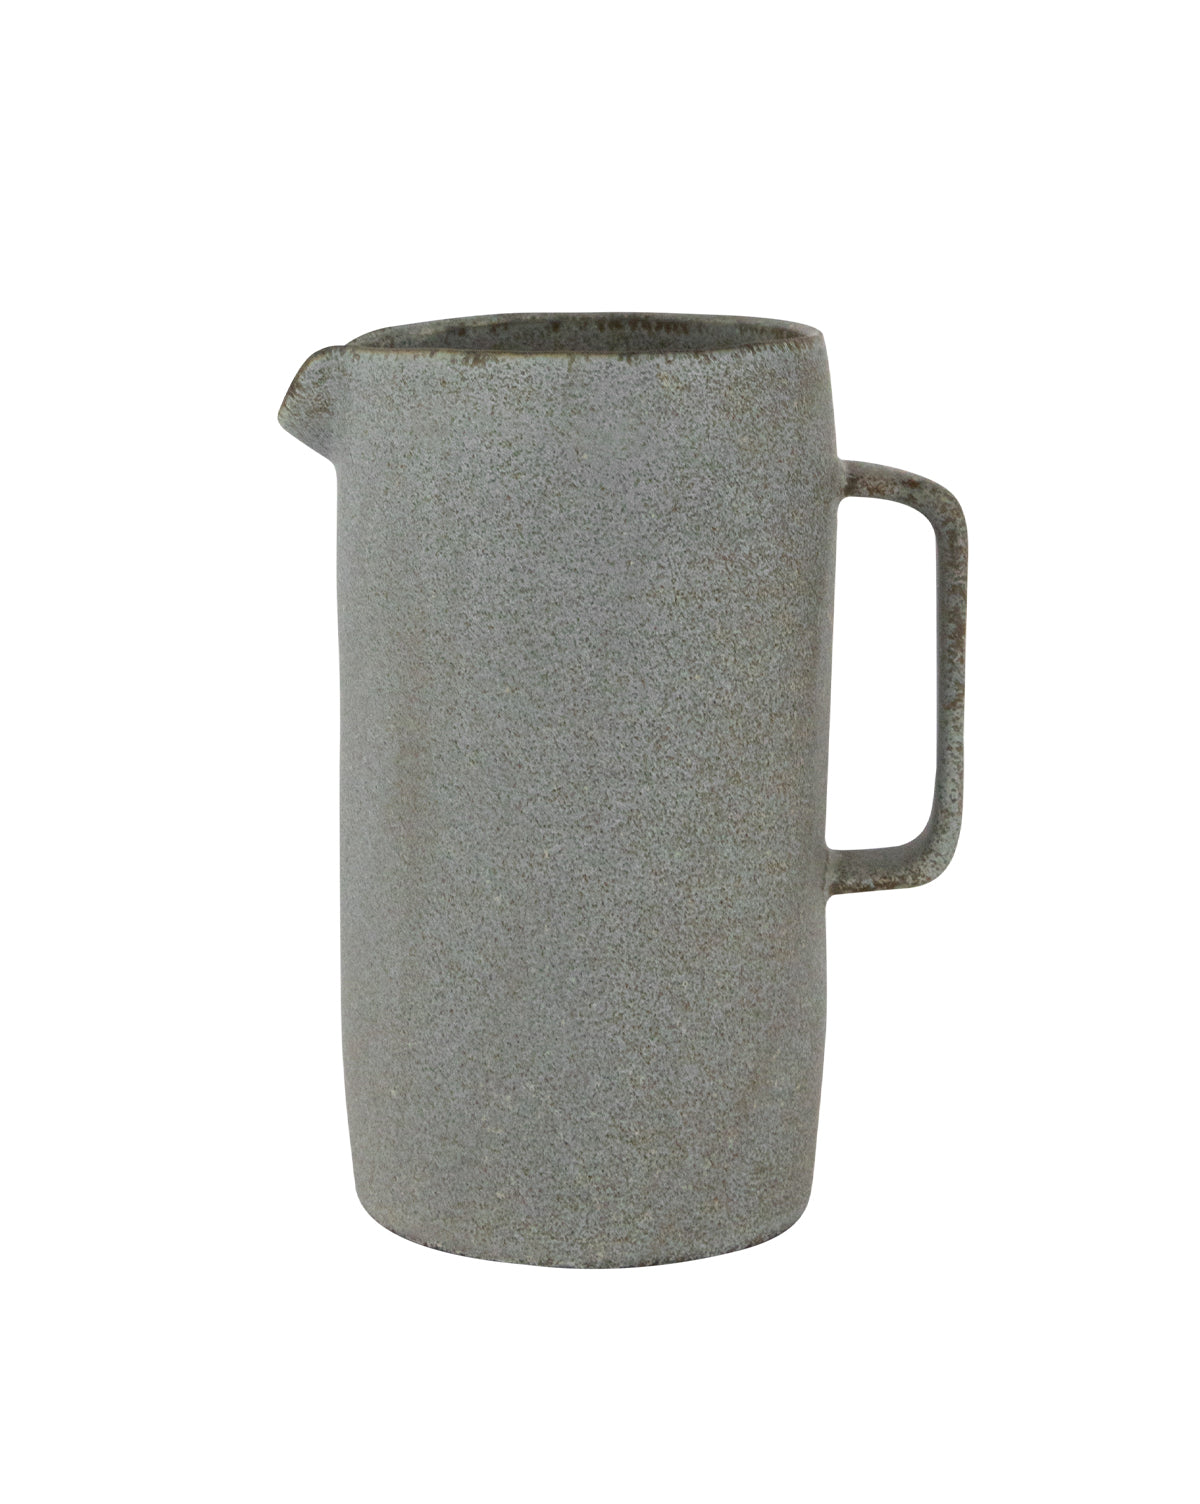 Fog Glaze Pitcher